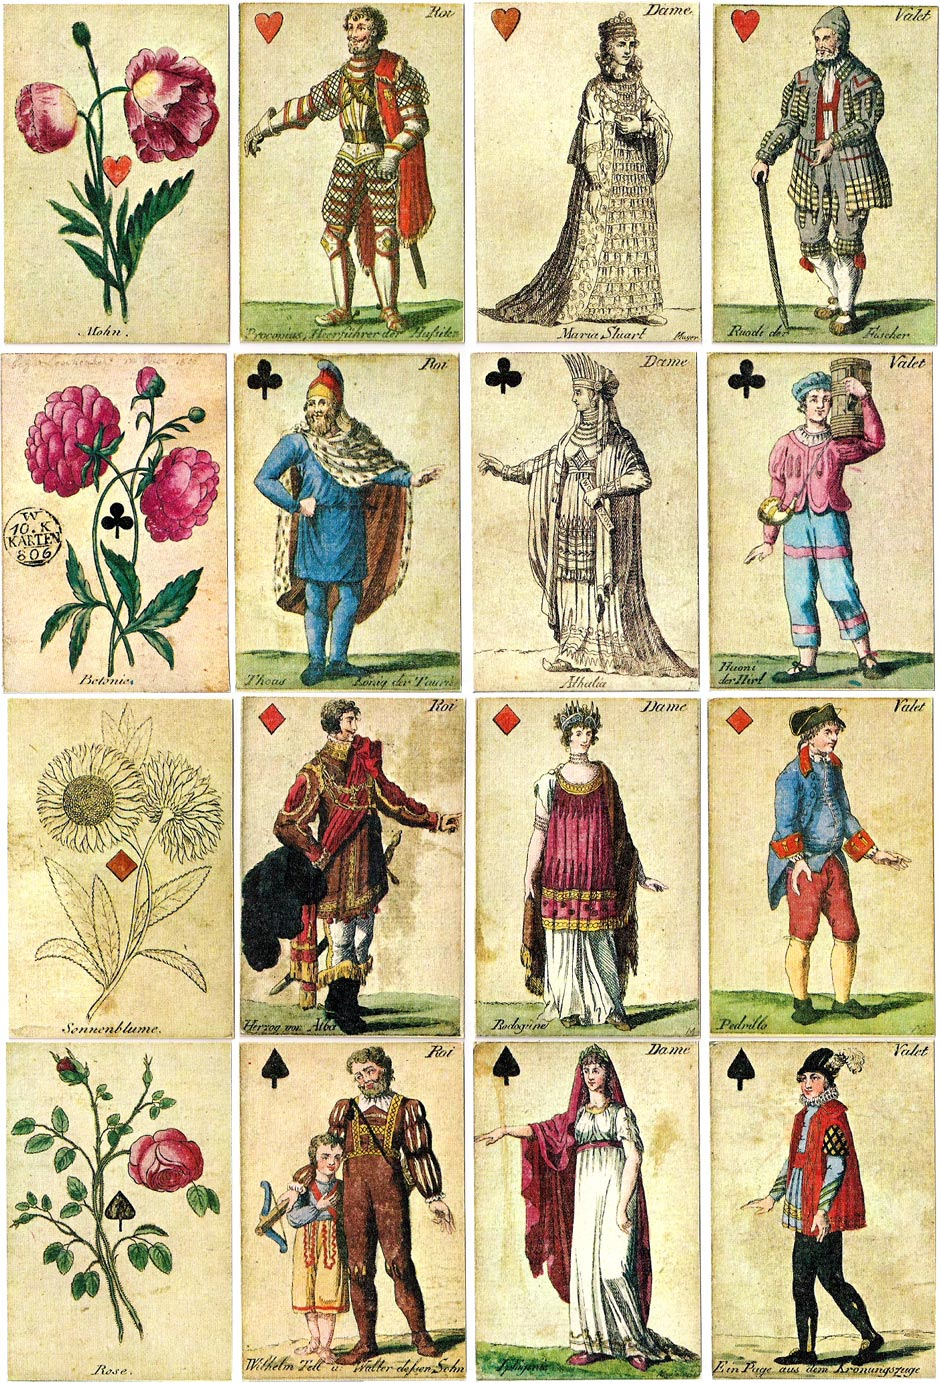 Johann H. Löschenkohl's Botanical Playing Cards, originally published in Vienna in 1806